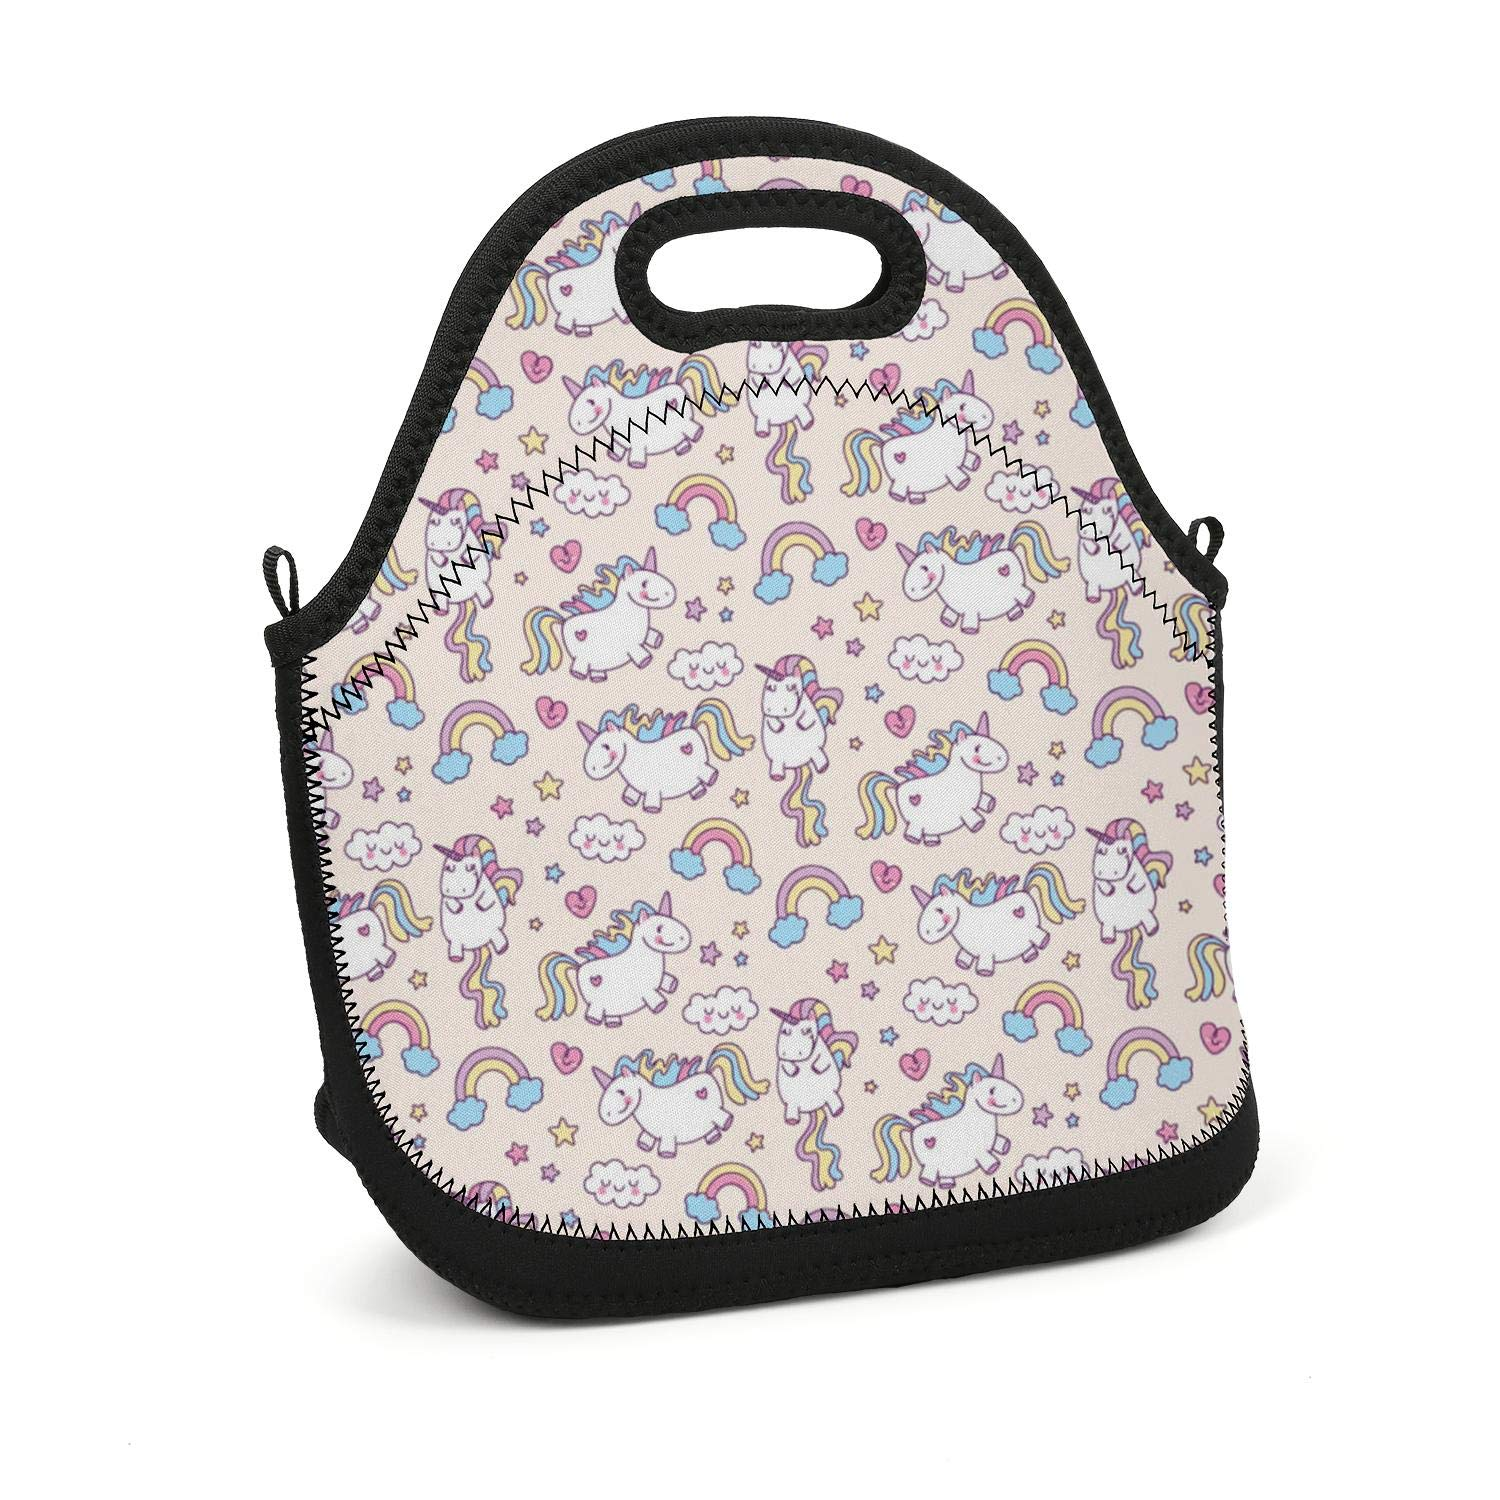 affc30efa7a3 Amazon.com - Hiunisyue Lunch Box Love Unicorn Rainbow Insulated ...